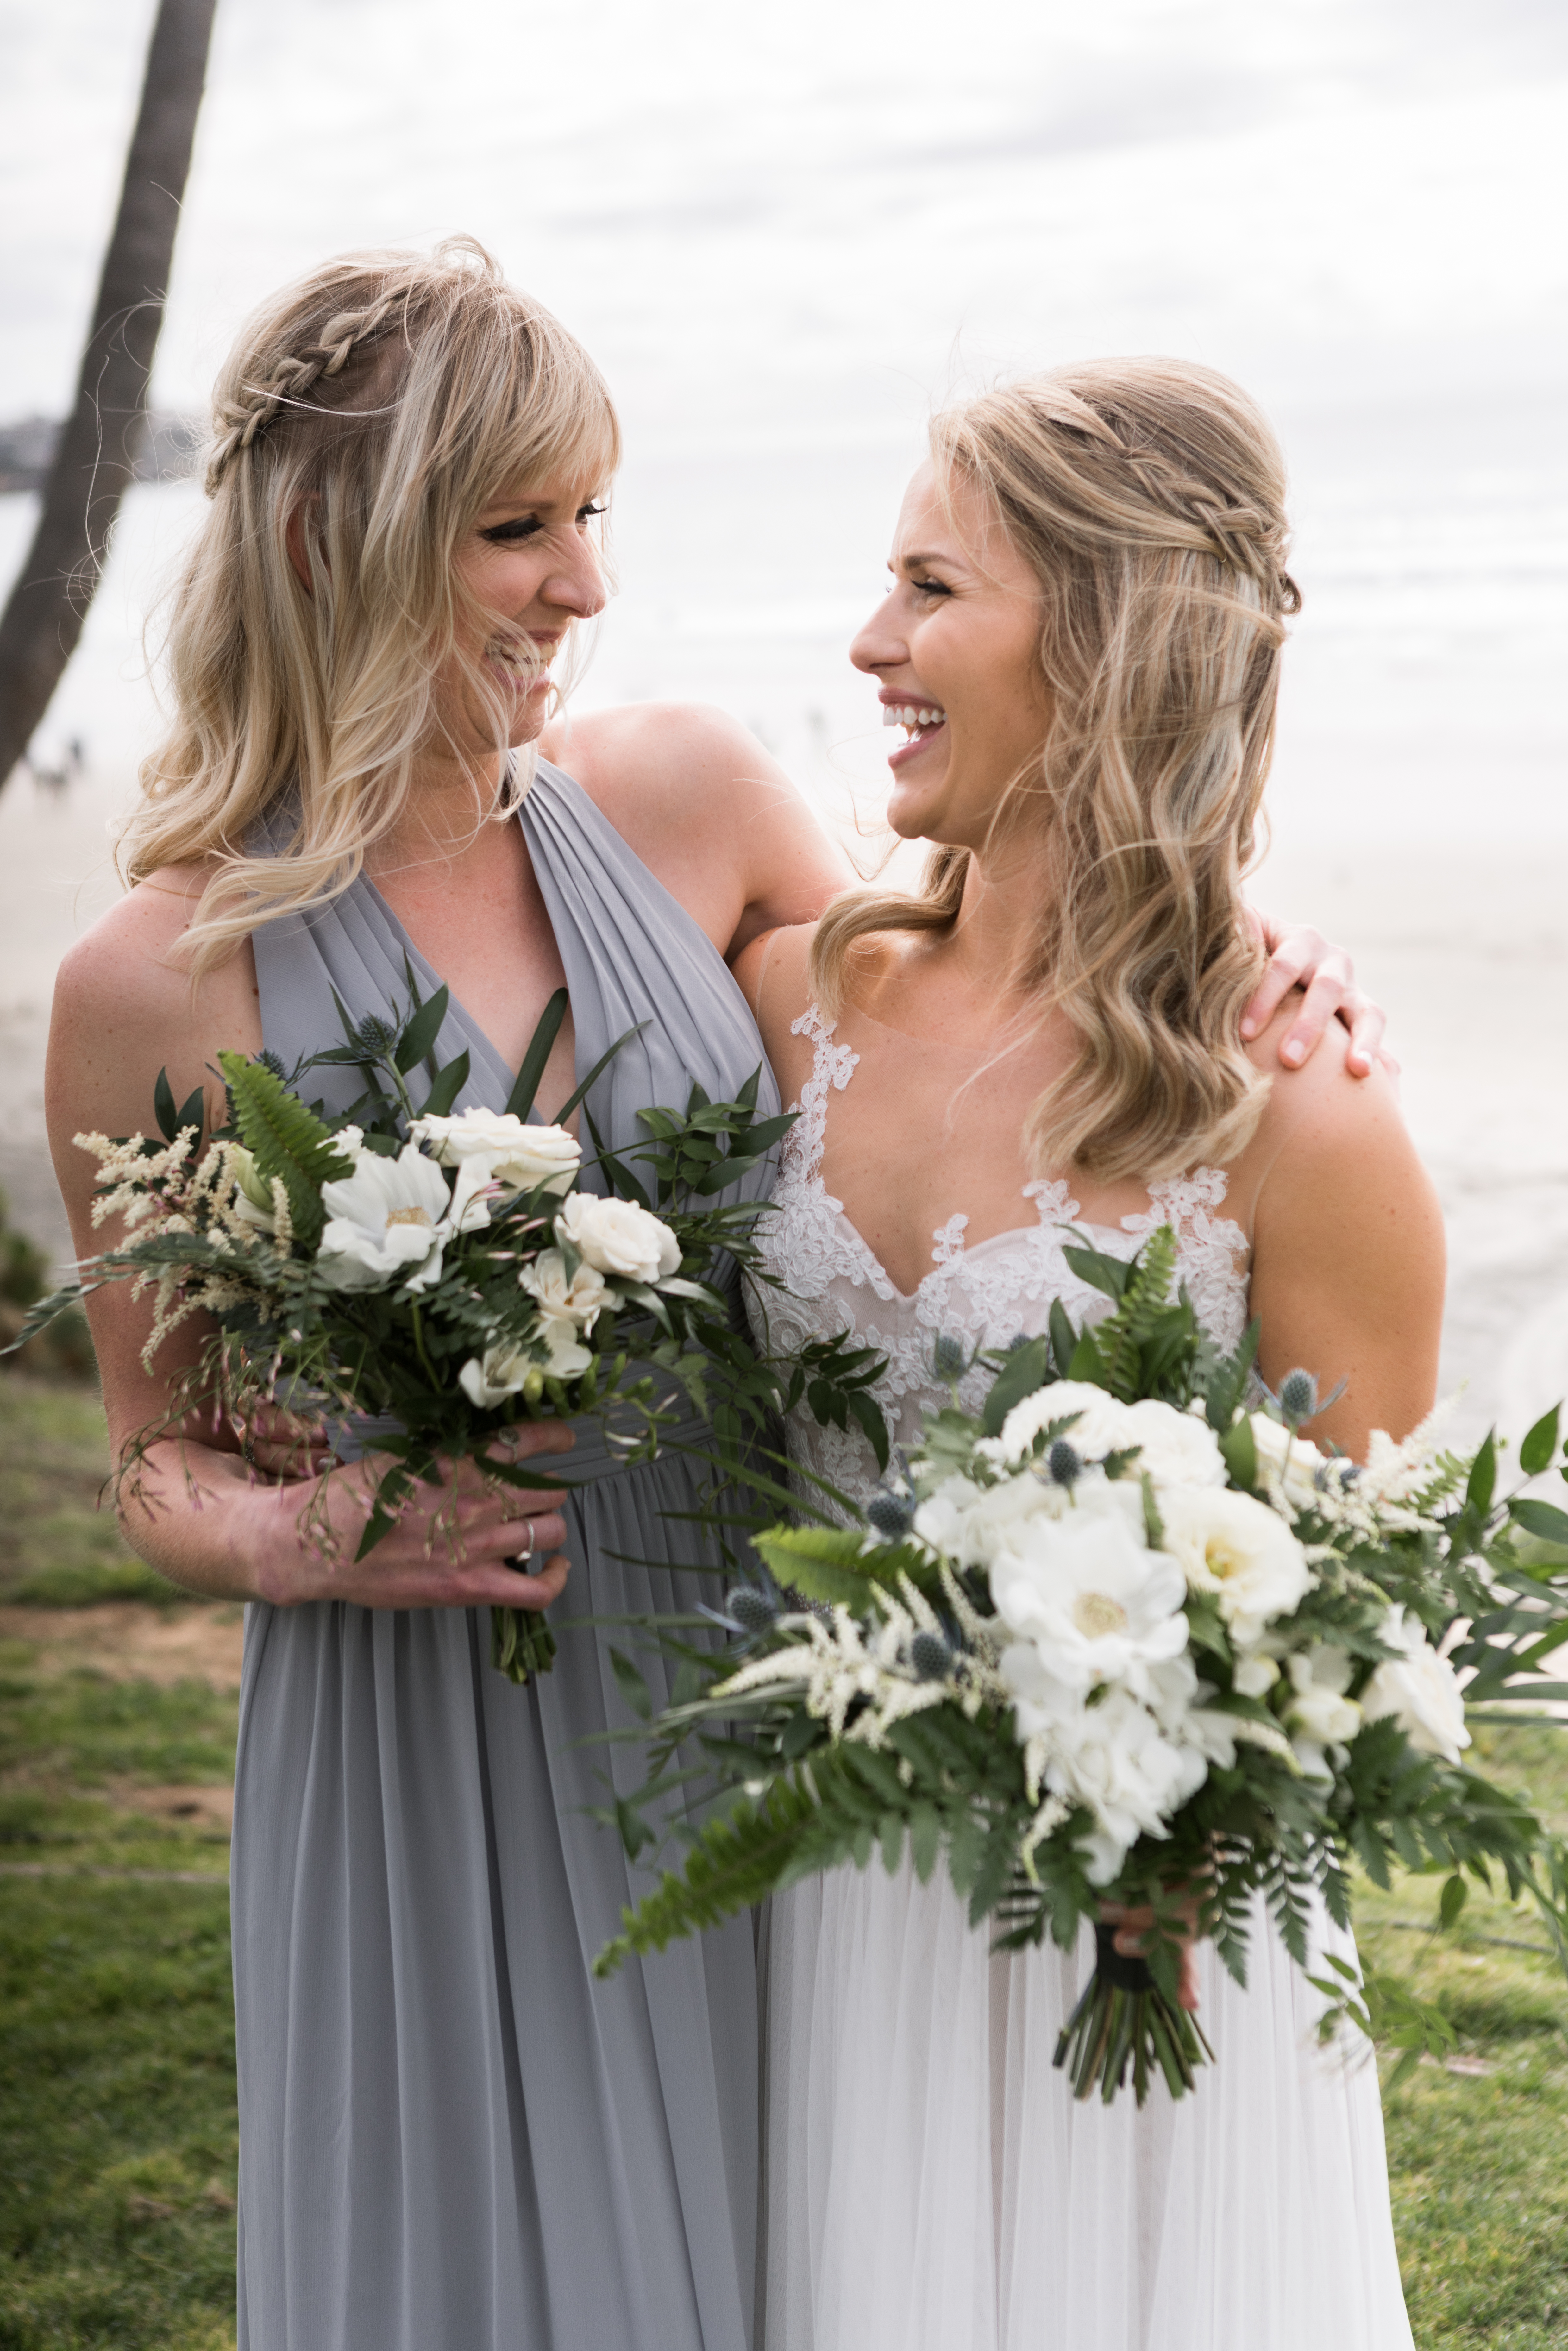 Abbey and Dean's Wedding took place at Scripps Seaside Forum on a misty grey beach day. The white and blue flowers with a tropical twist went beautiful with the overcast afternoon!